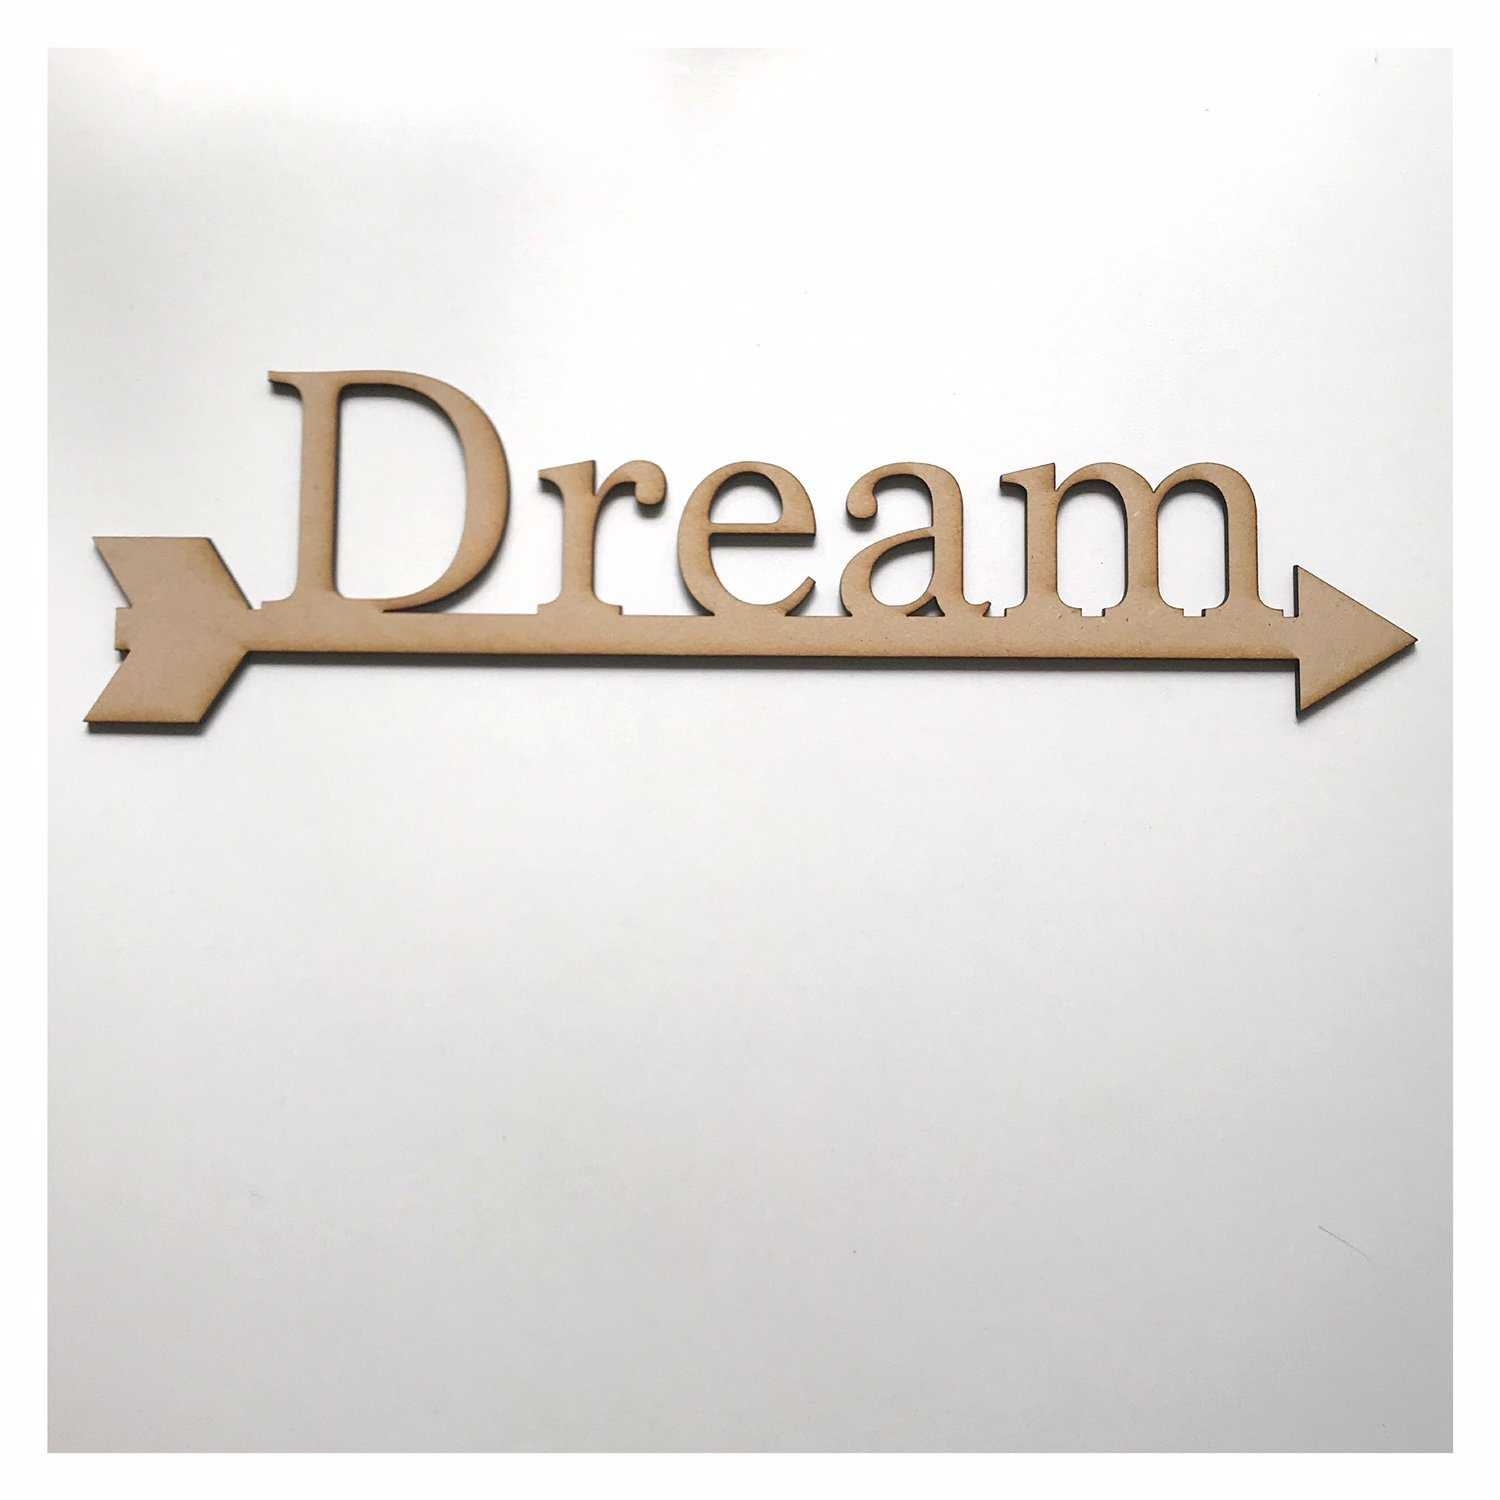 Dream with Arrow Sign County Shabby Chic MDF Wooden Word Shape Raw Other Home Décor The Renmy Store